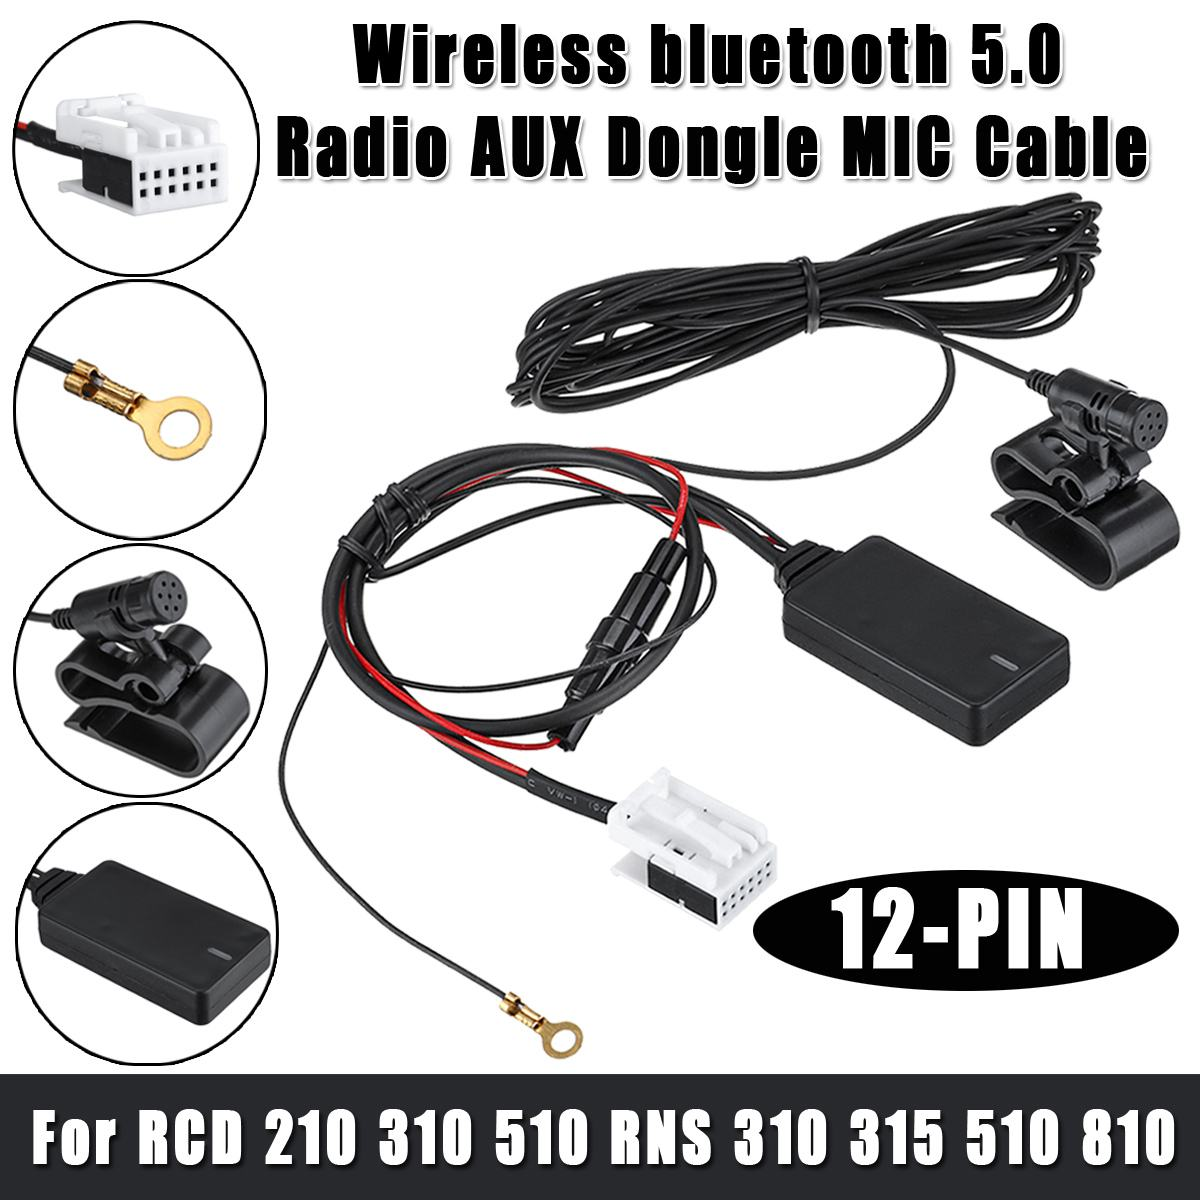 12Pin Car Hands-free Radio AUX Dongle MIC For VW For Skoda RCD 210 310 510 RNS 310 315 510 810 Wireless Bluetooth 5.0